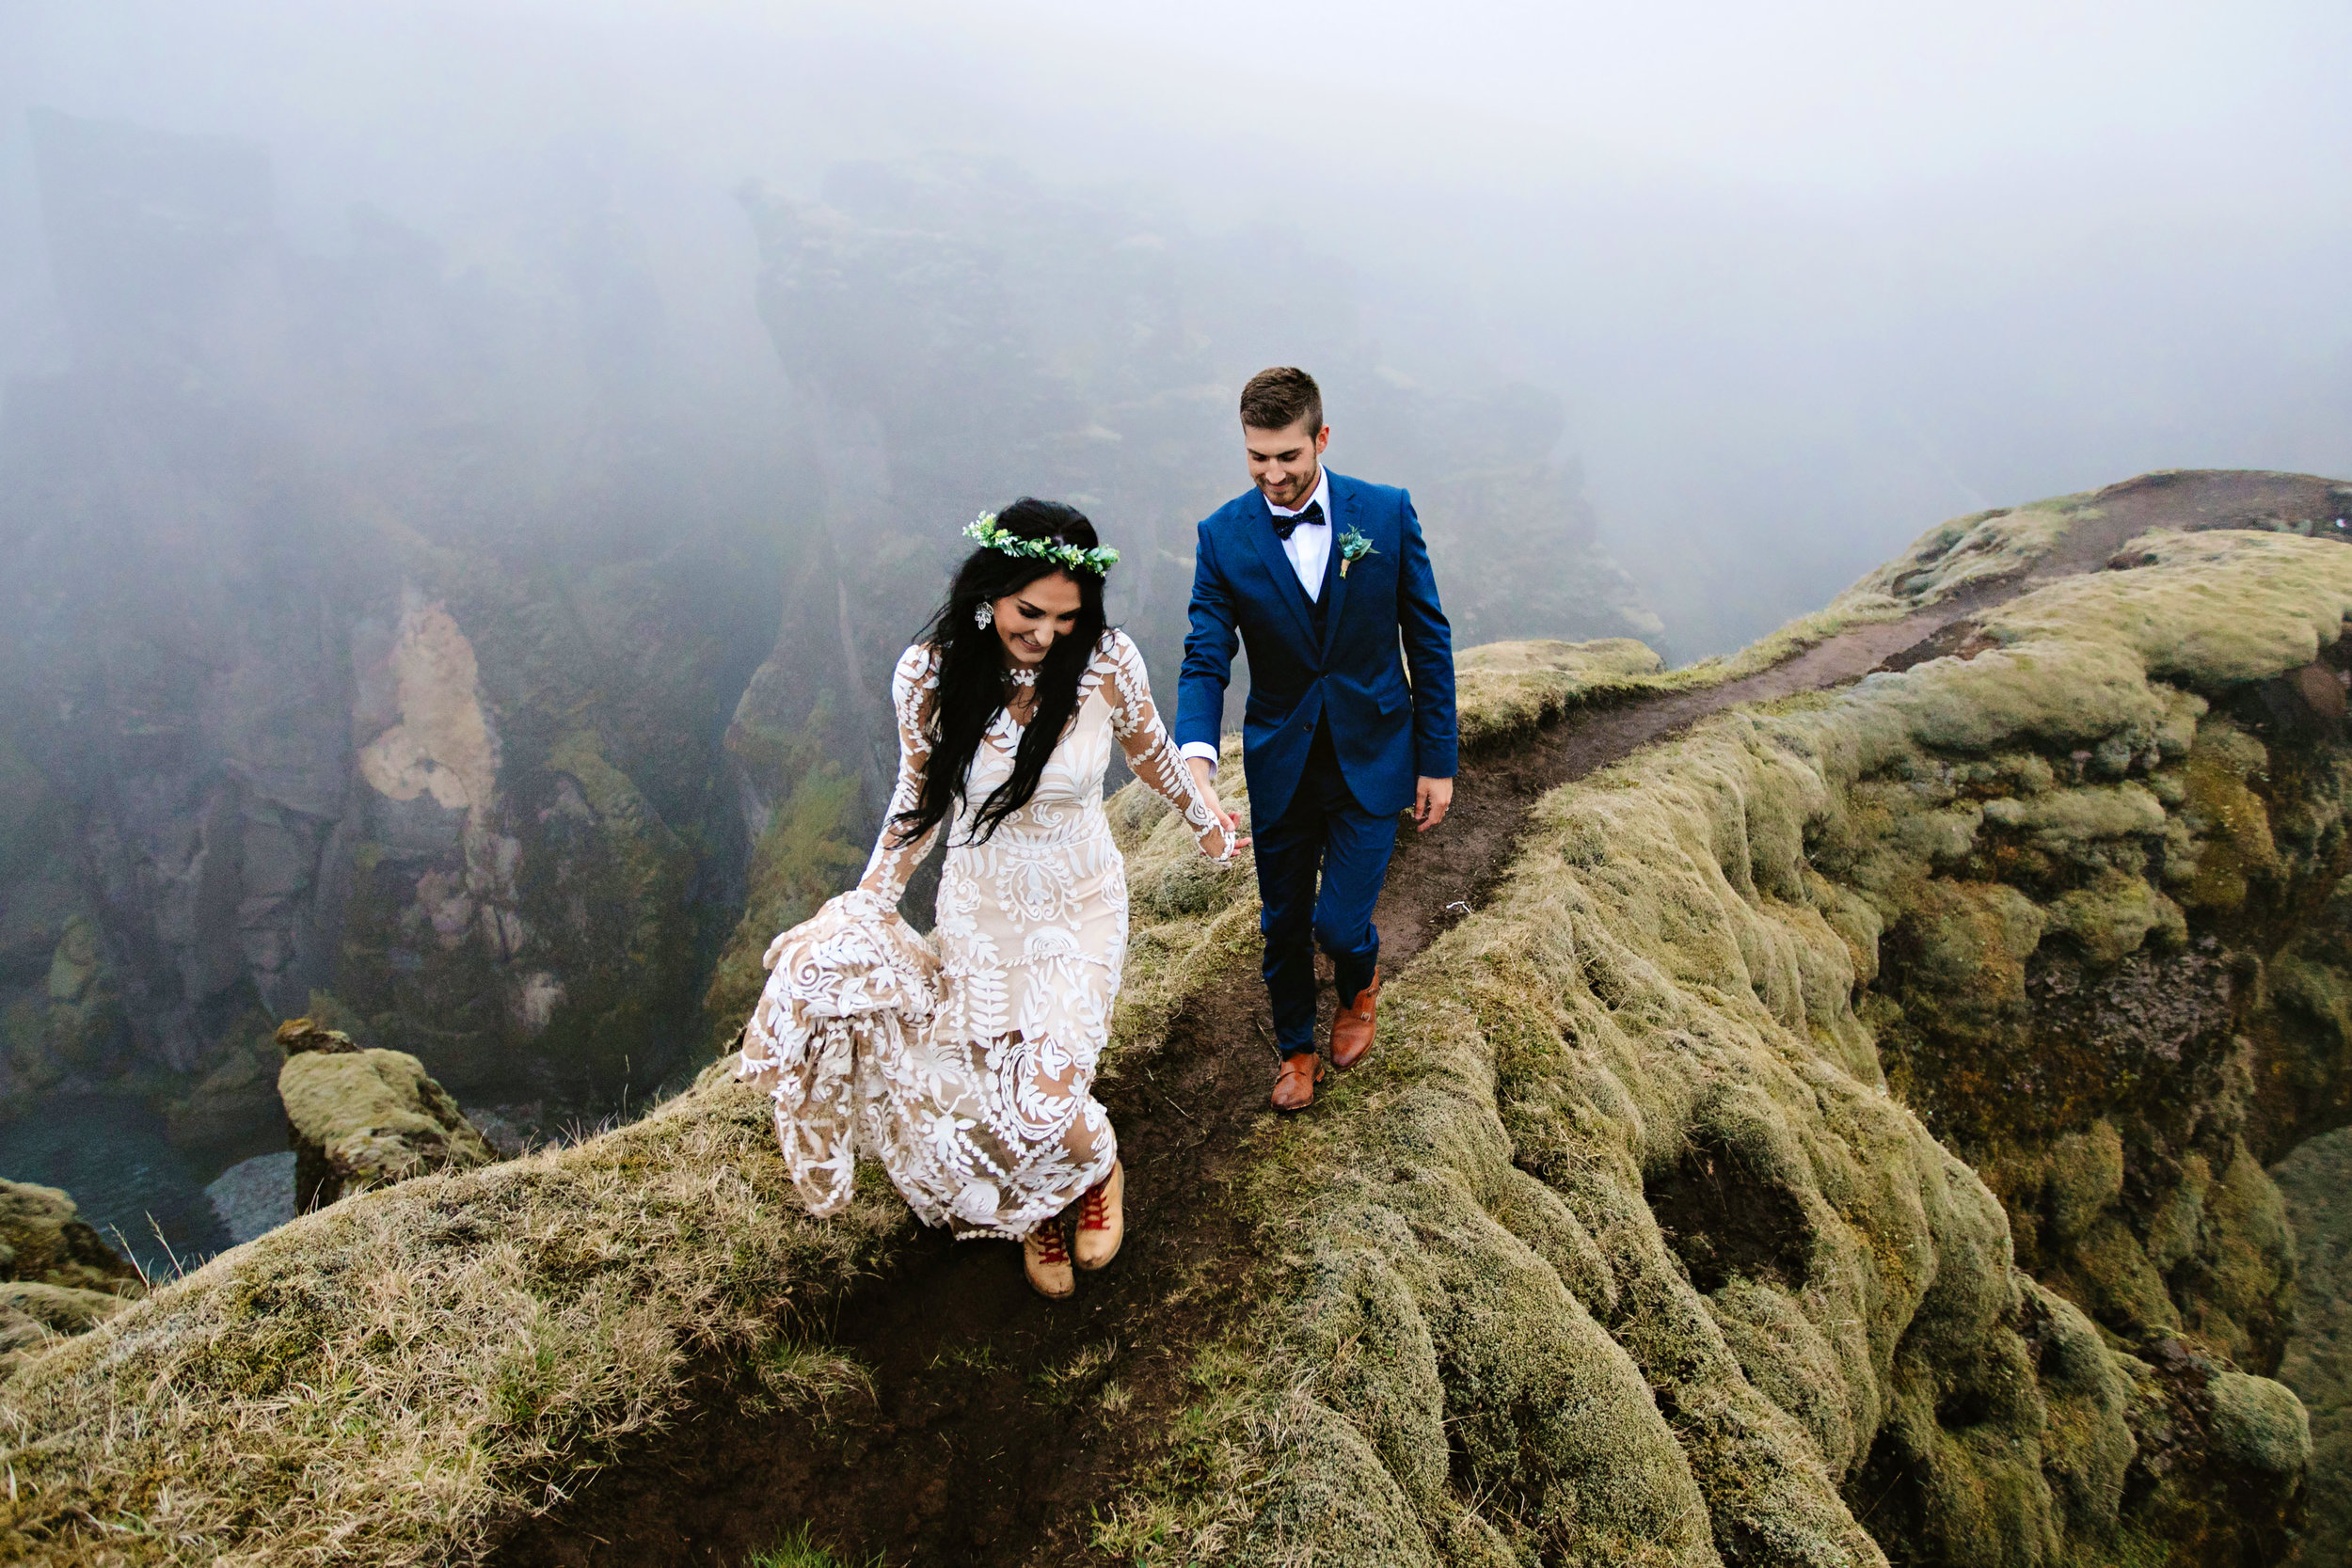 My husband Brady and I chose to do an adventurous wedding in Iceland hiking the most beautiful scenery in our wedding attire and I highly encourage you to do whatever it is that makes you happy even if it's going against the grain and being different. I absolutely love intimate adventurous weddings and truly believe they are one of the most special and intimate ways you can say your I do's.